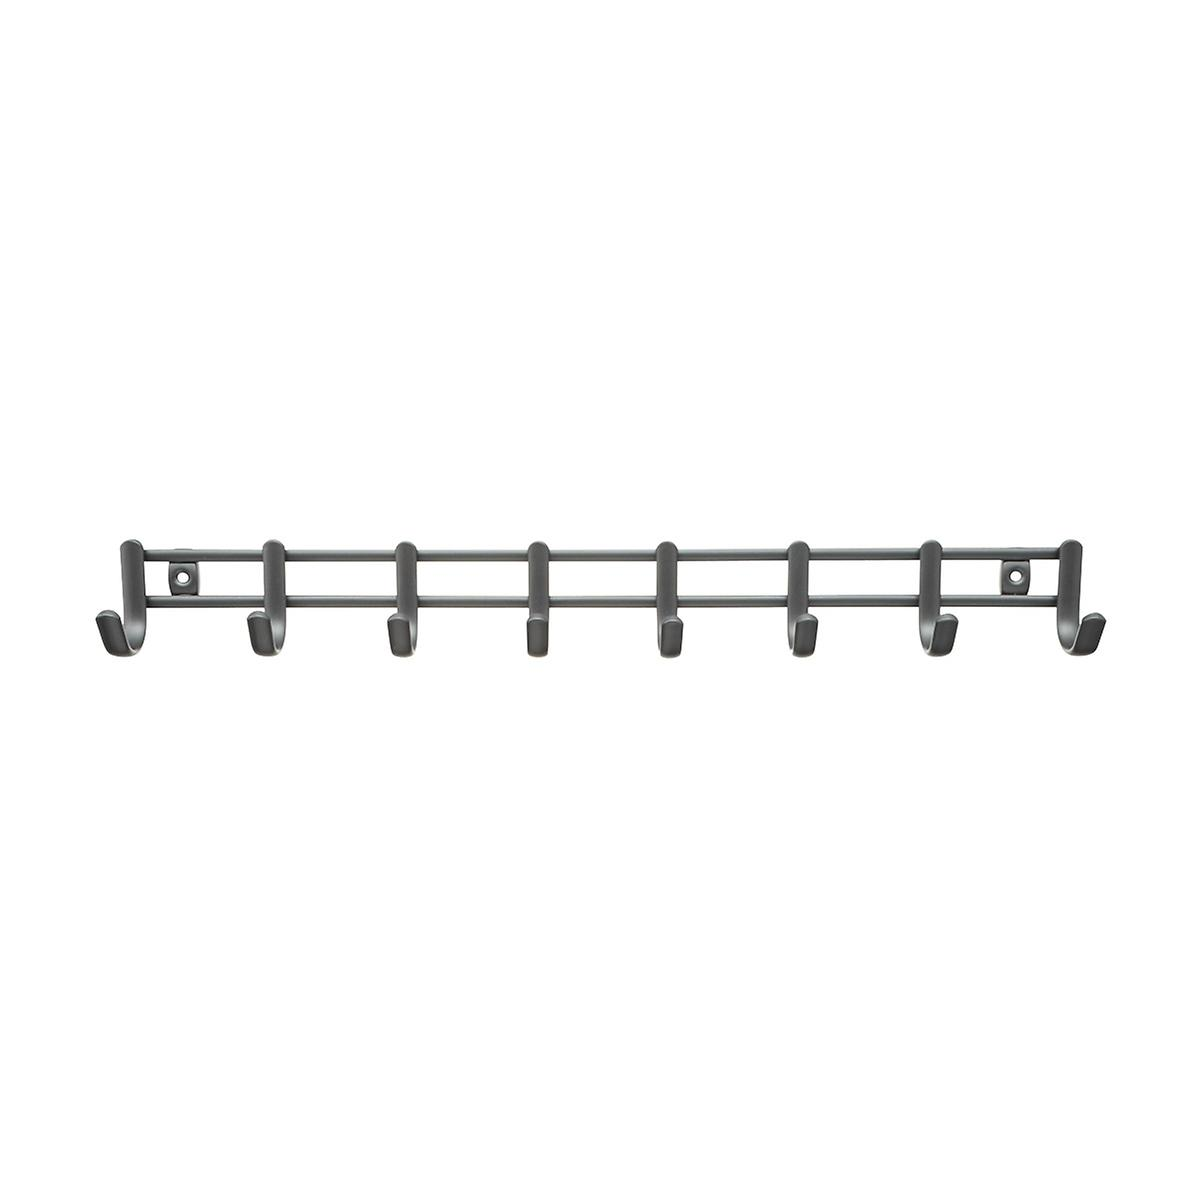 InterDesign Axis Graphite Horizontal Tie & Belt Rack